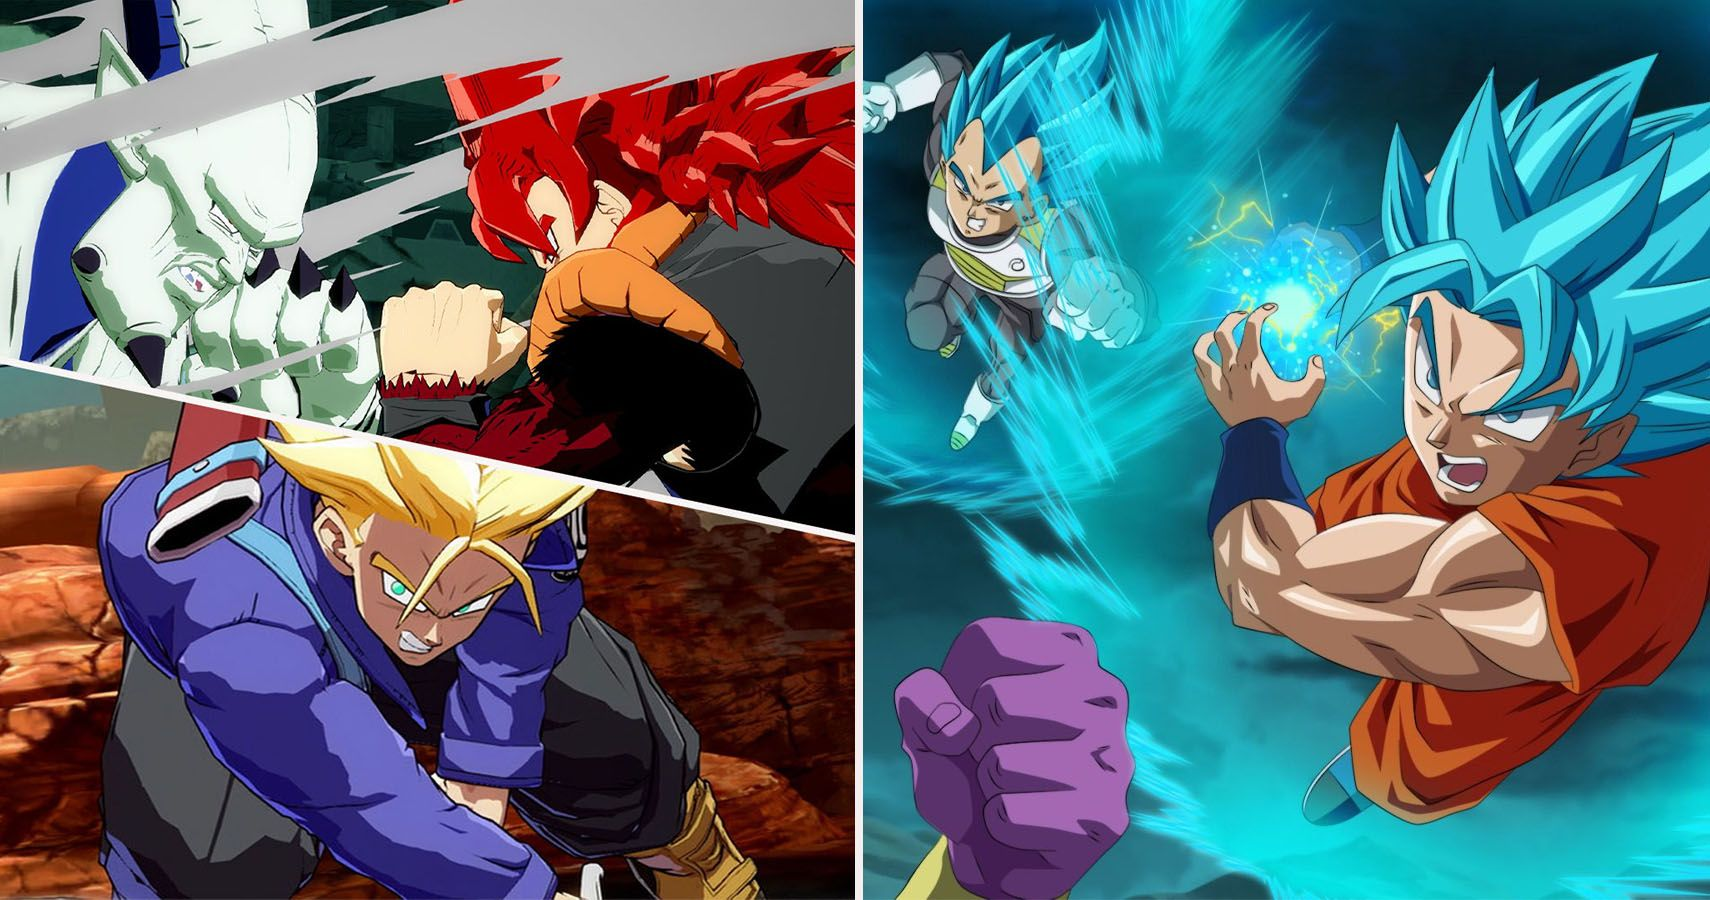 Dragon Ball The 15 Most Important Fights That Saved The Franchise And 10 That Seriously Hurt It Chapter 11 the return of garlic junior 11. dragon ball the 15 most important